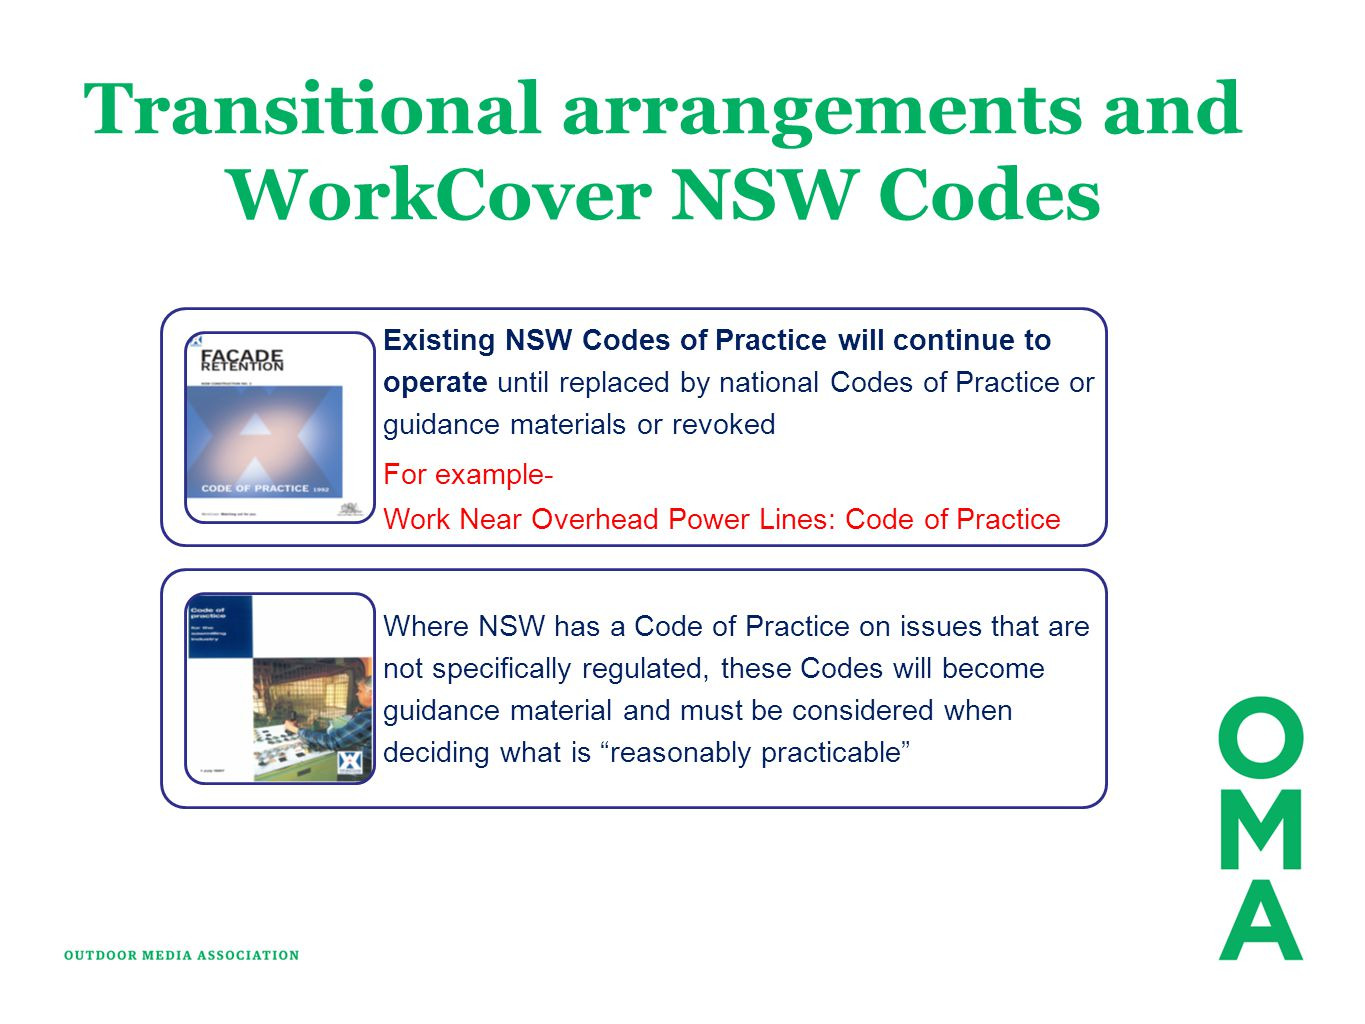 Transitional arrangements and WorkCover NSW Codes